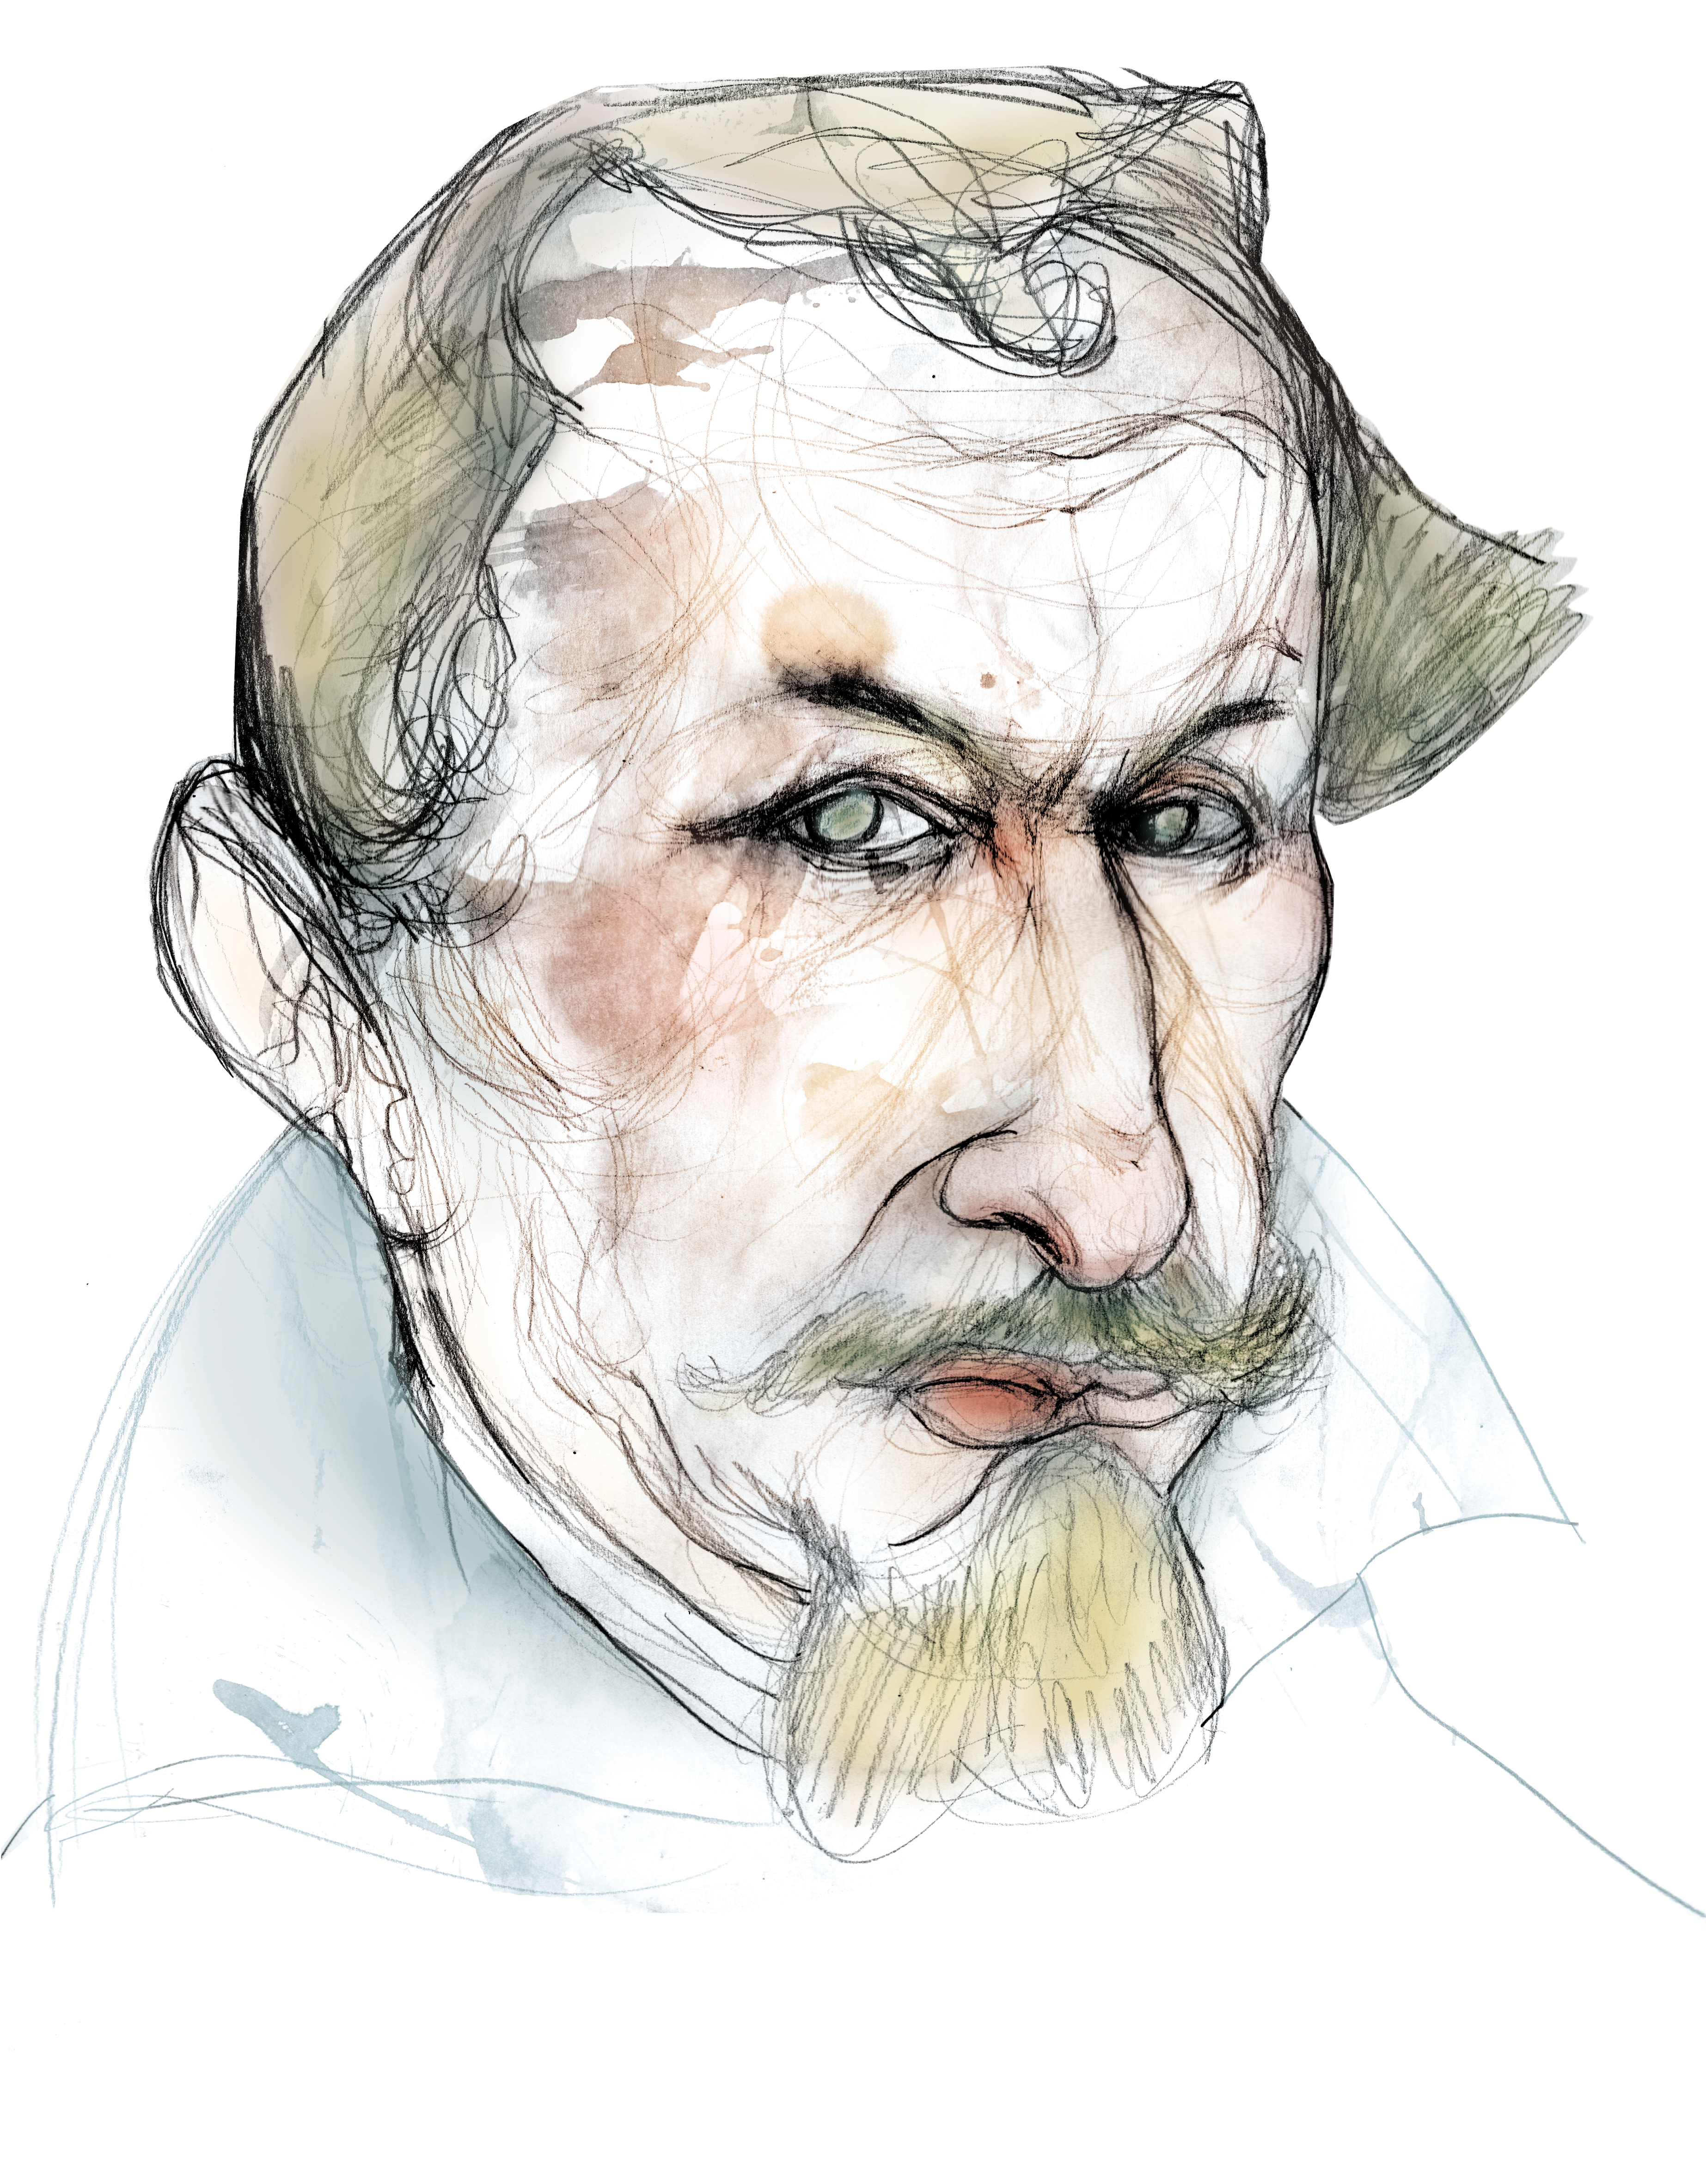 Sketch of Alonso de Santa Cruz, from the [[Spanish Foundation for Science and Technology]]